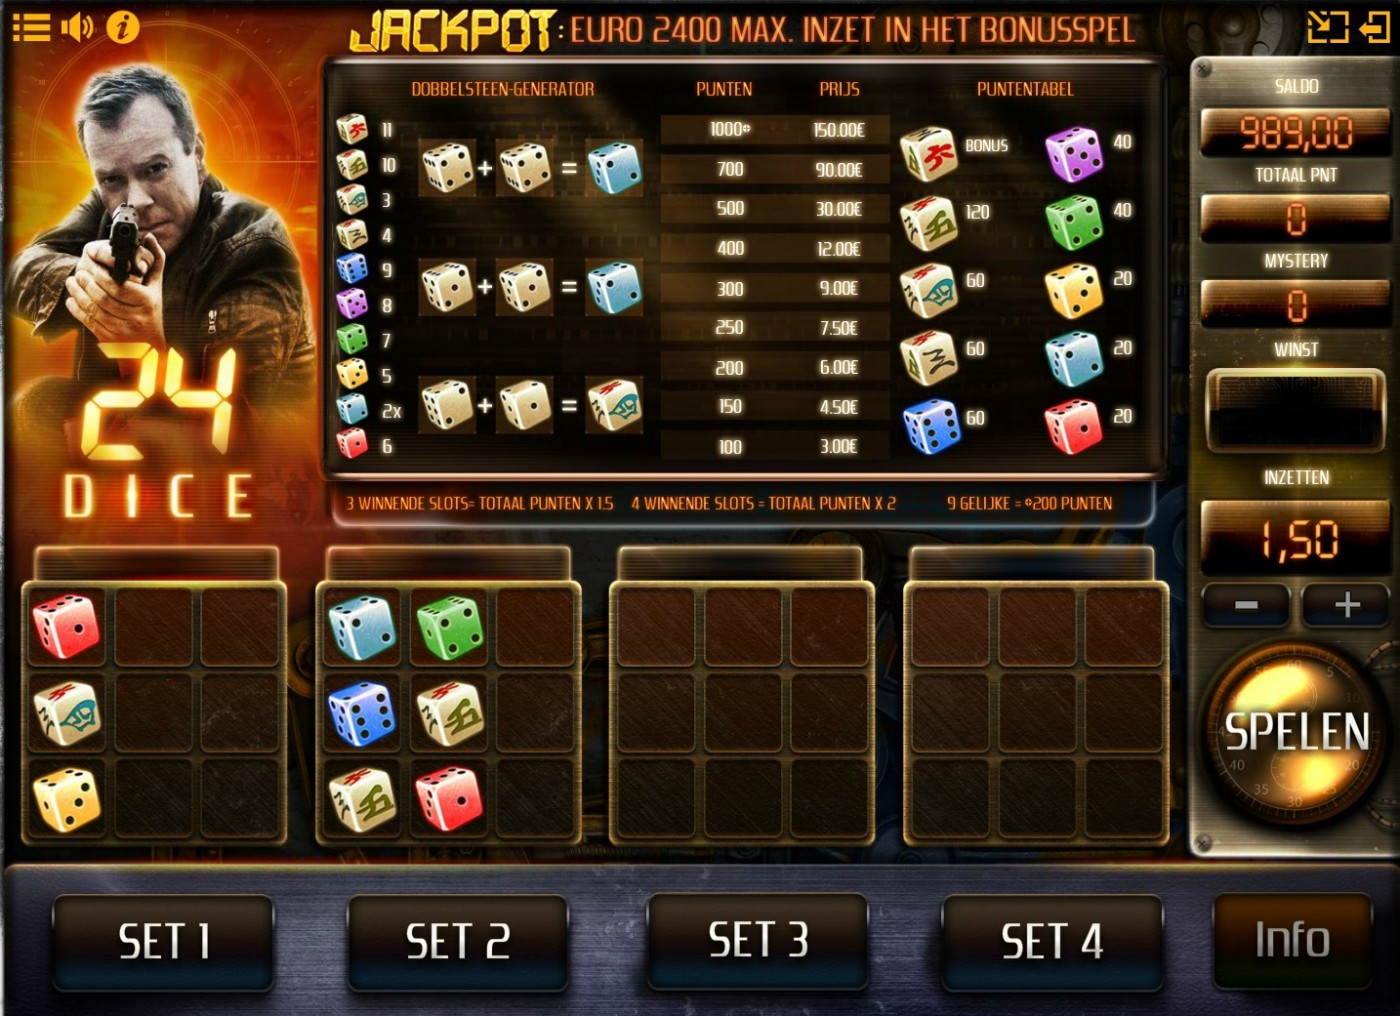 24 dice game IsoftBet